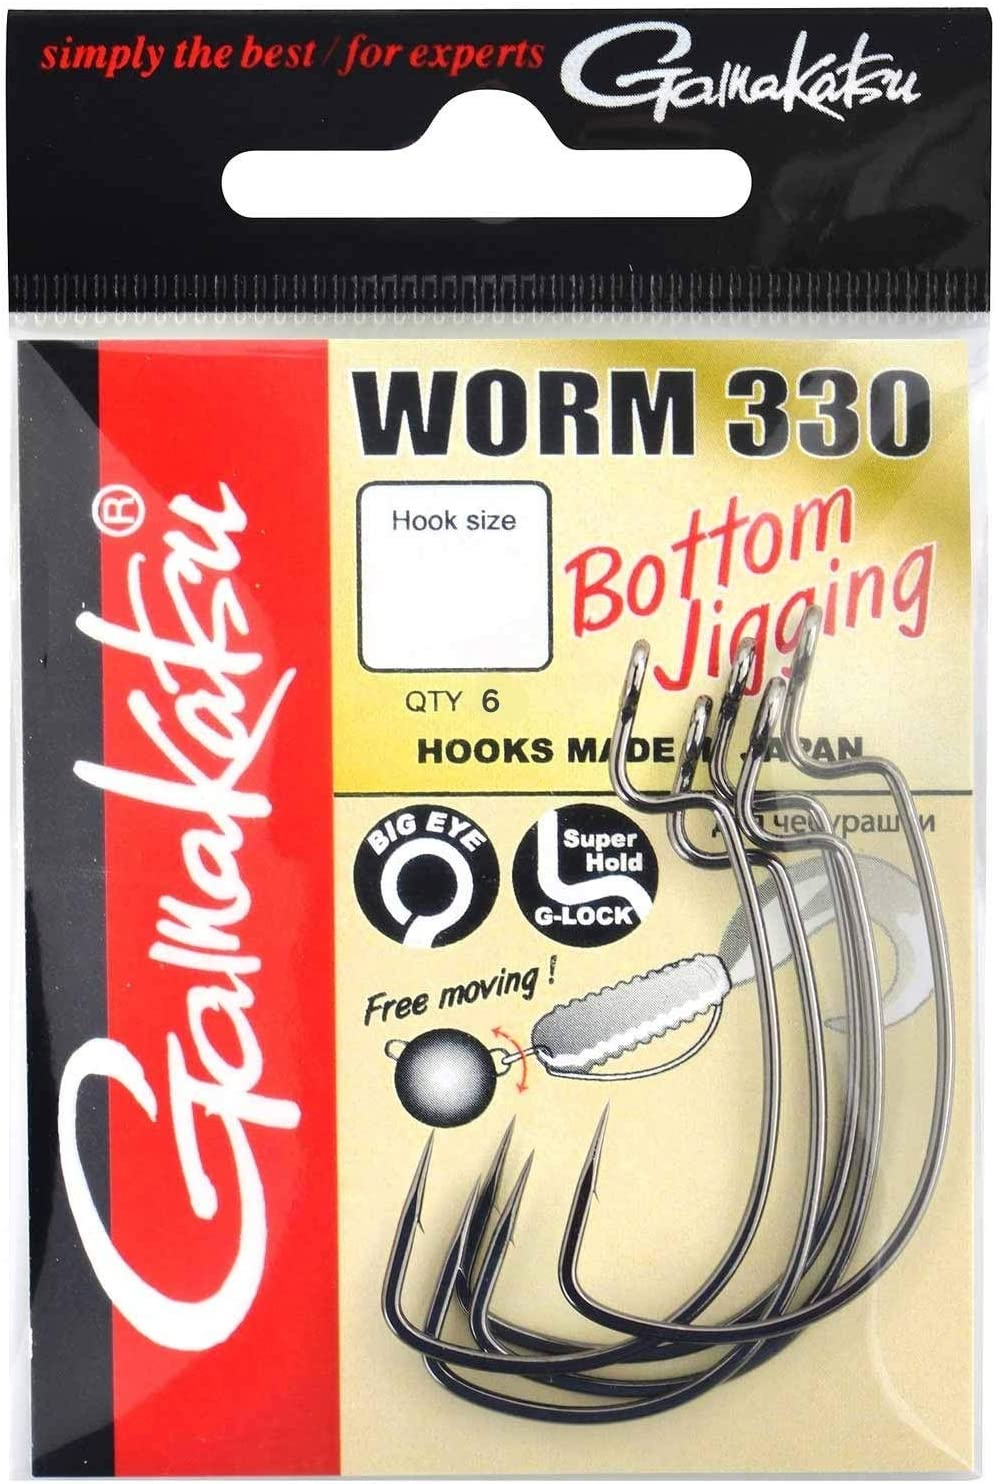 gamak Daihatsu Worm 330/ Crochets Bottom Jigging Taille 1